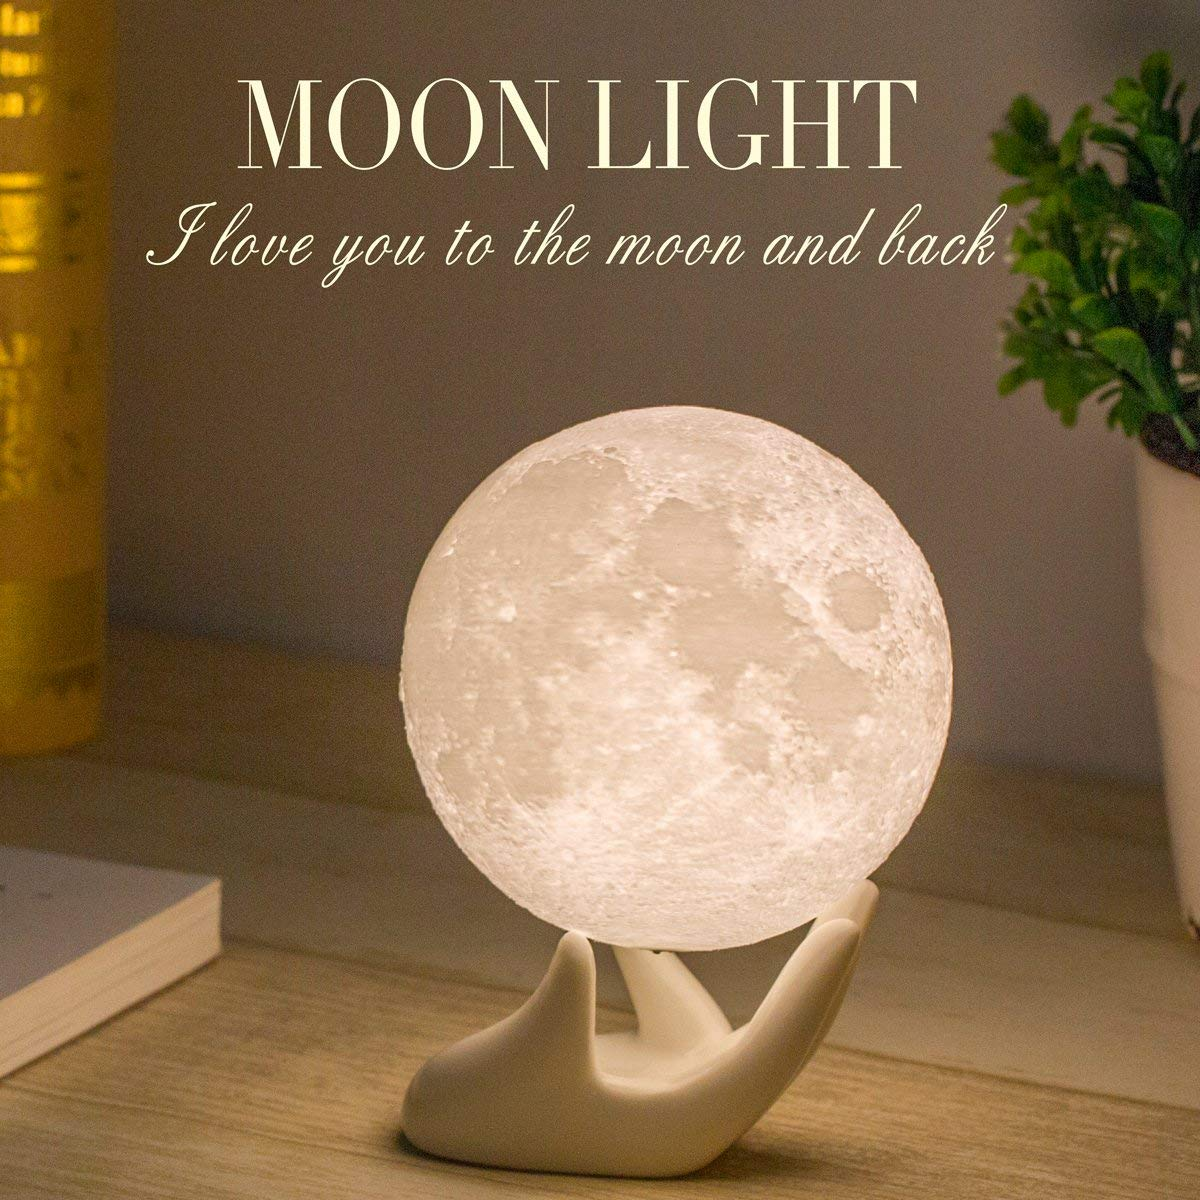 Luna Lamps Reviews